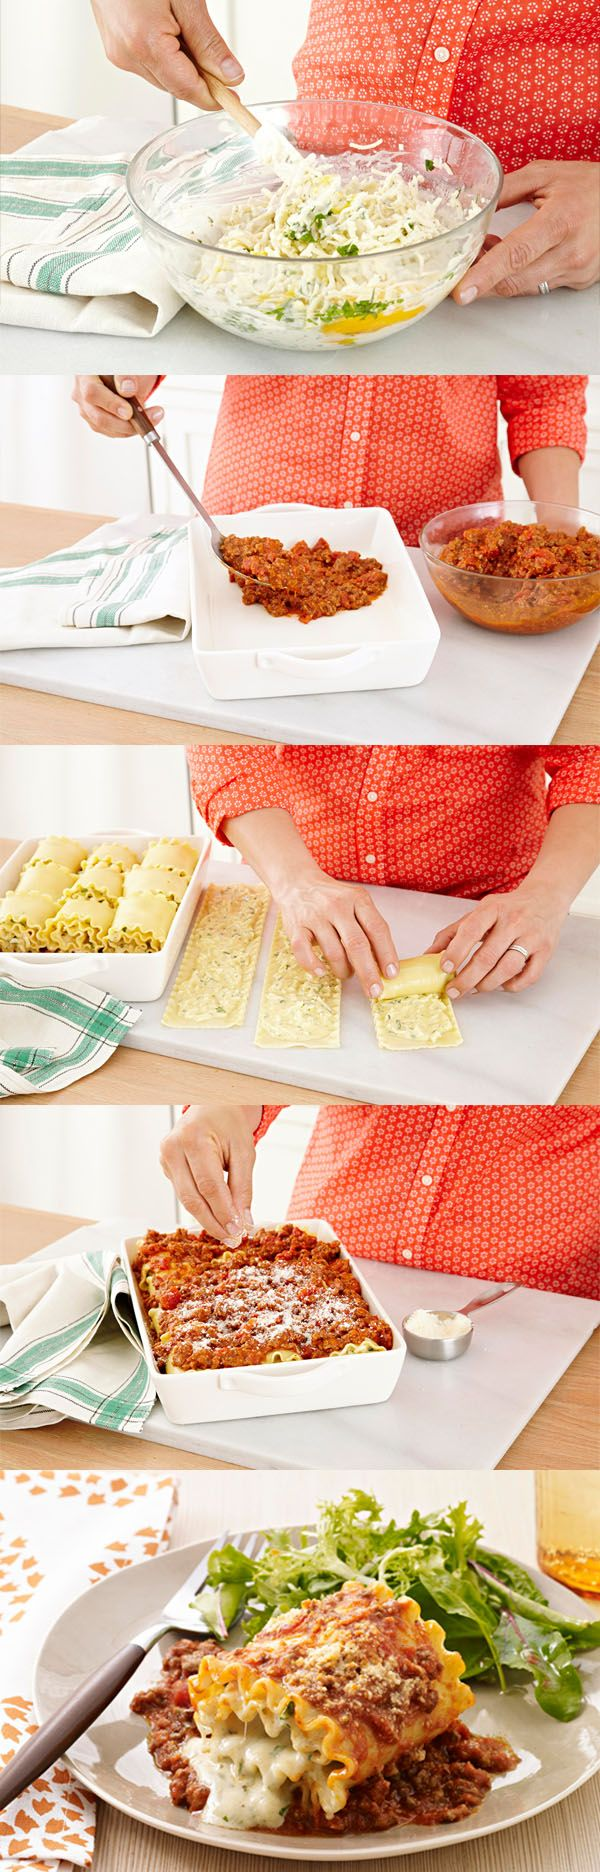 Creamy Lasagna Roll-Ups Recipe - step-by-step shots for this easy, cheesy, delicious recipe.